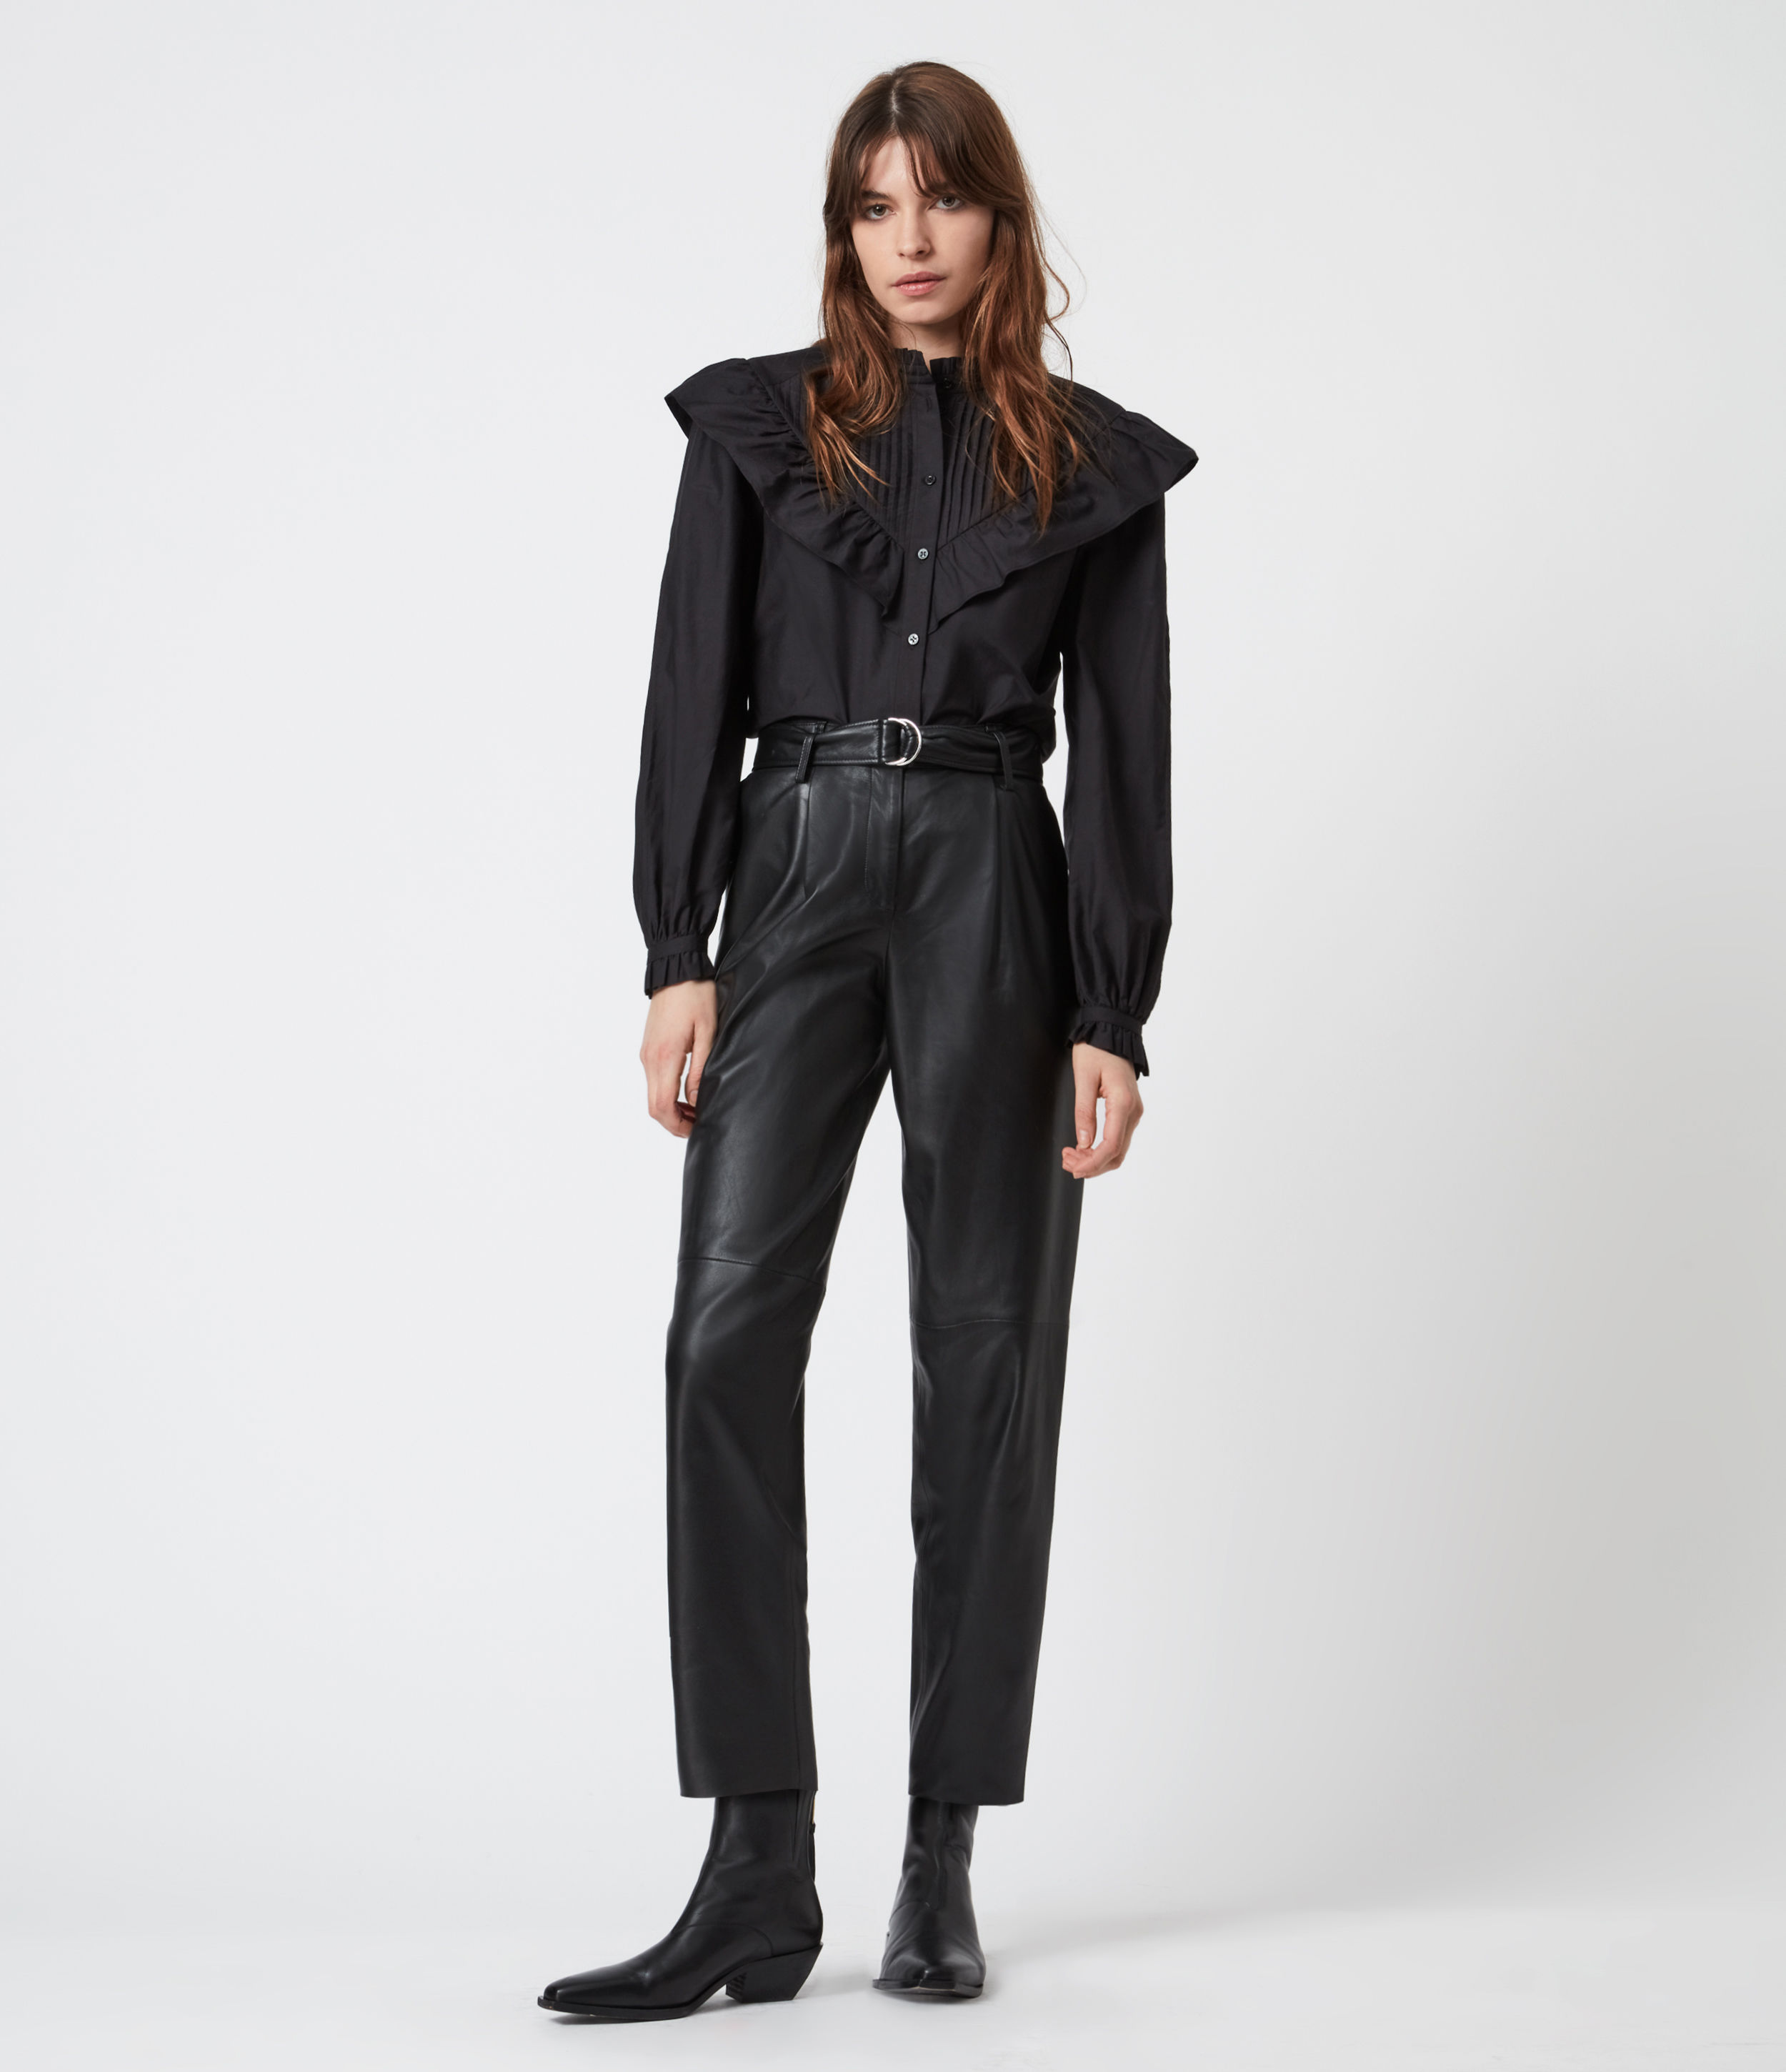 AllSaints Women's Leather Relaxed Fit Lana High-Rise Trousers, Black, Size: 10